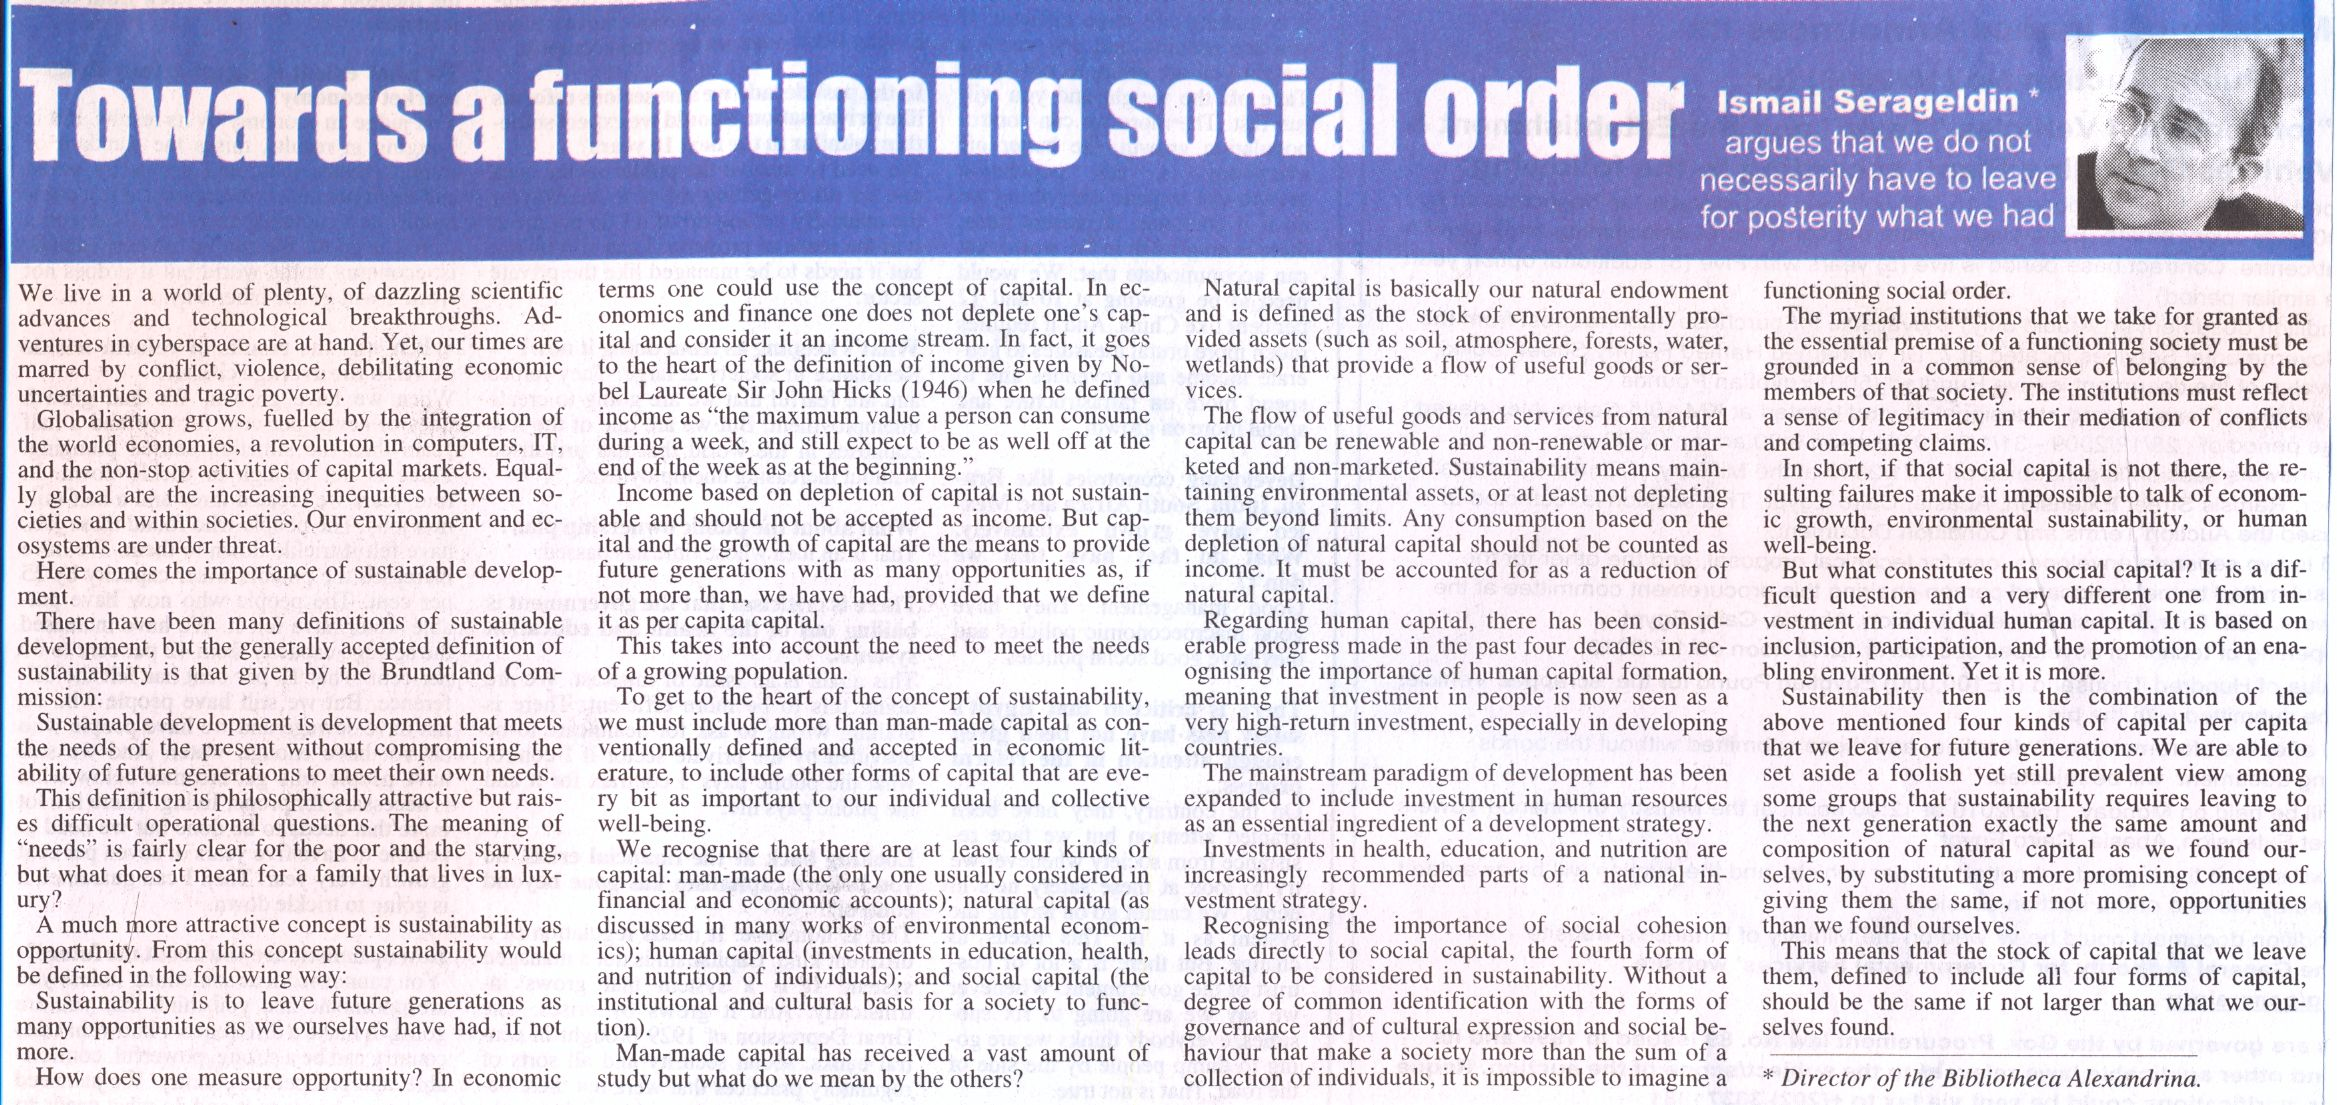 towards a functioning social order